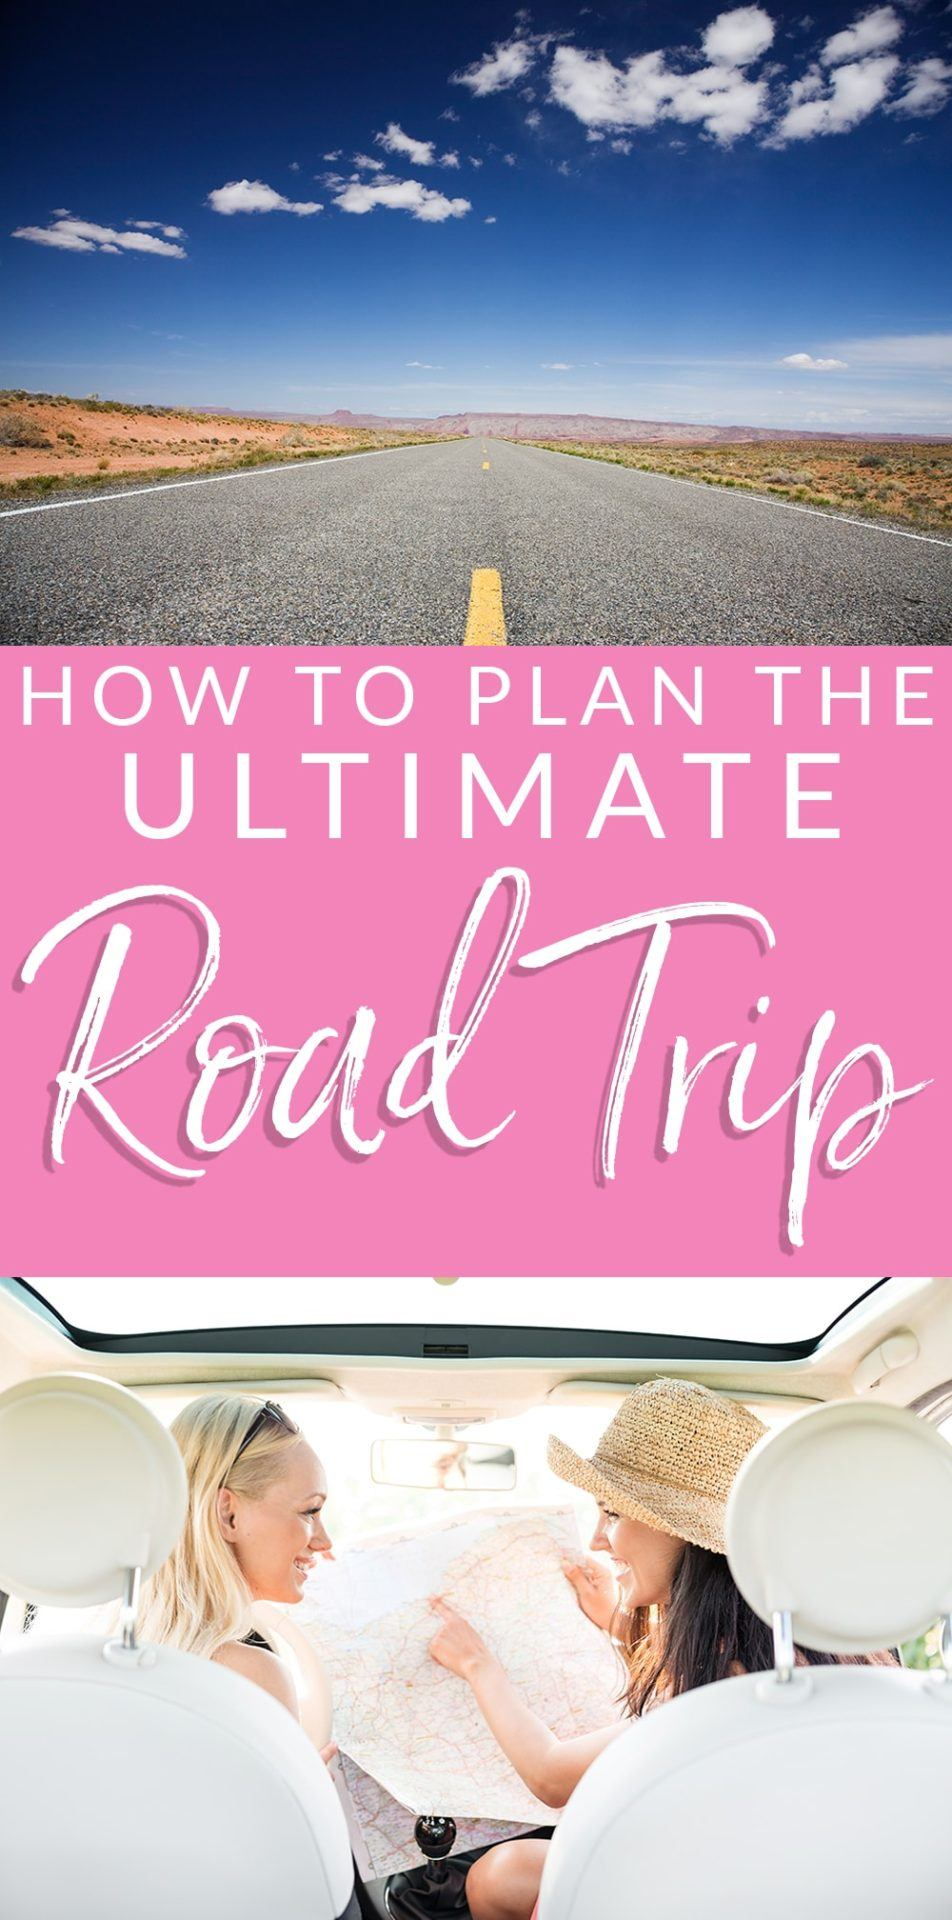 How to Plan the Ultimate Road Trip by Following these 5 Steps. From wanderlustcrew.com